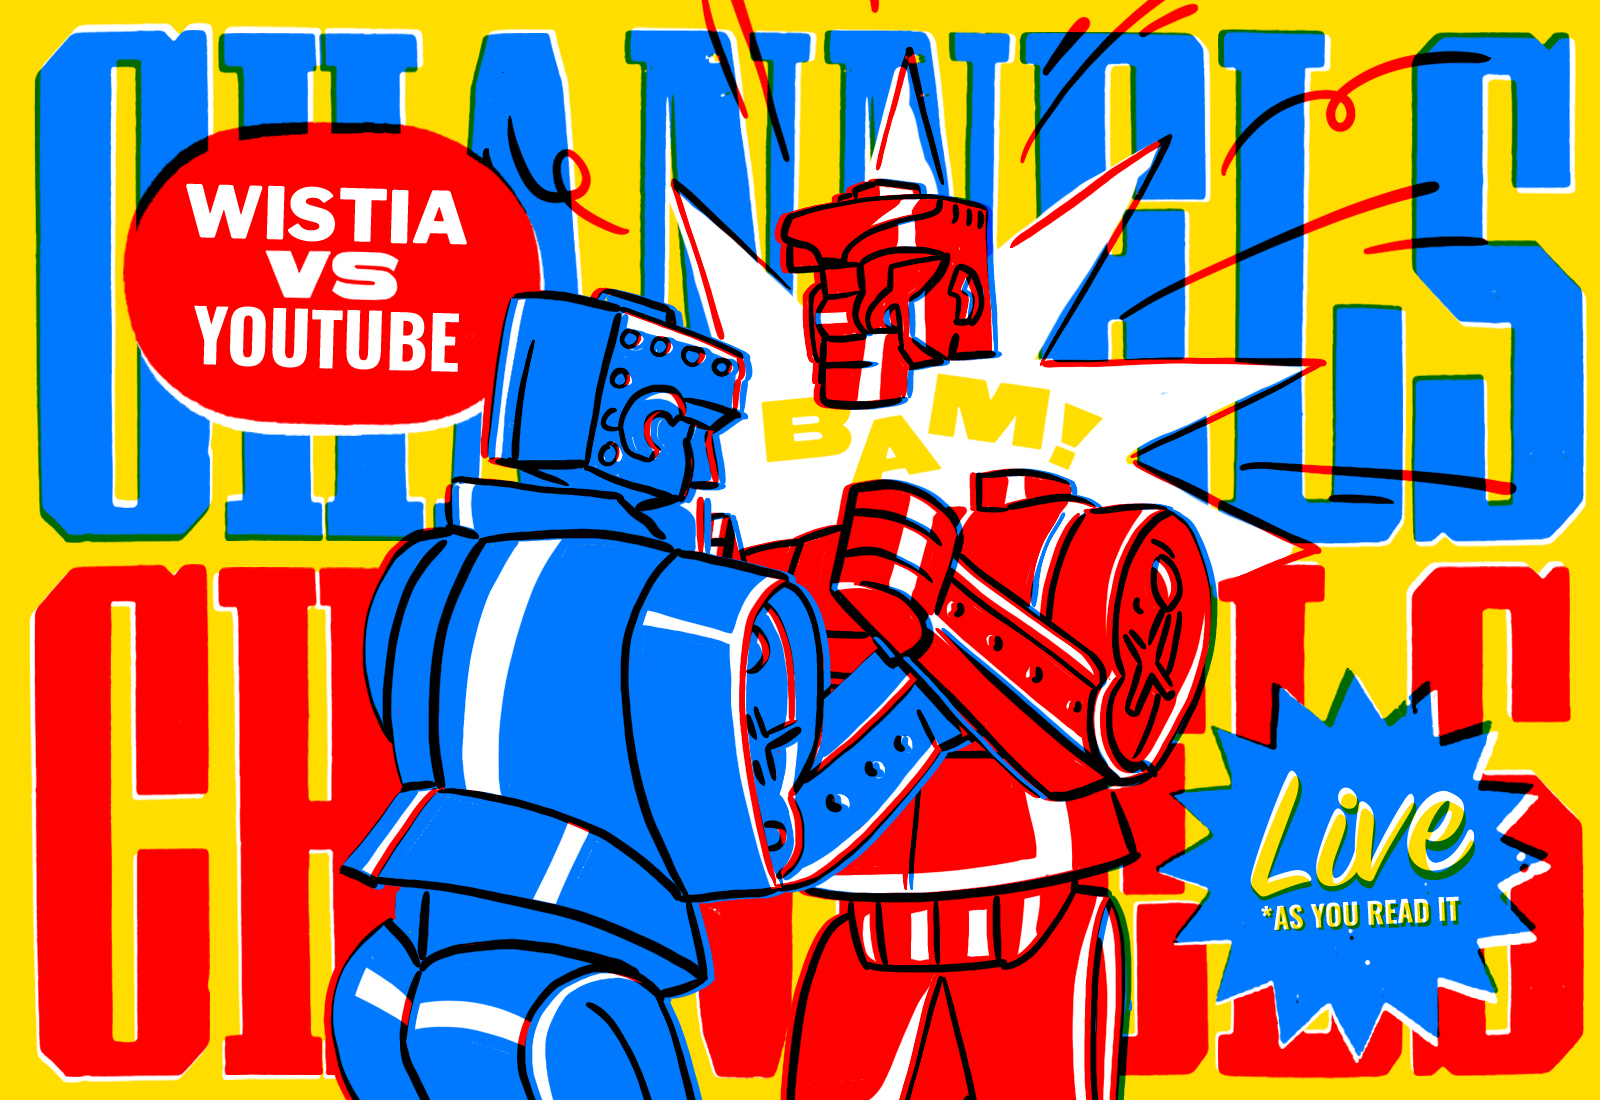 youtube-vs-wistia-blog